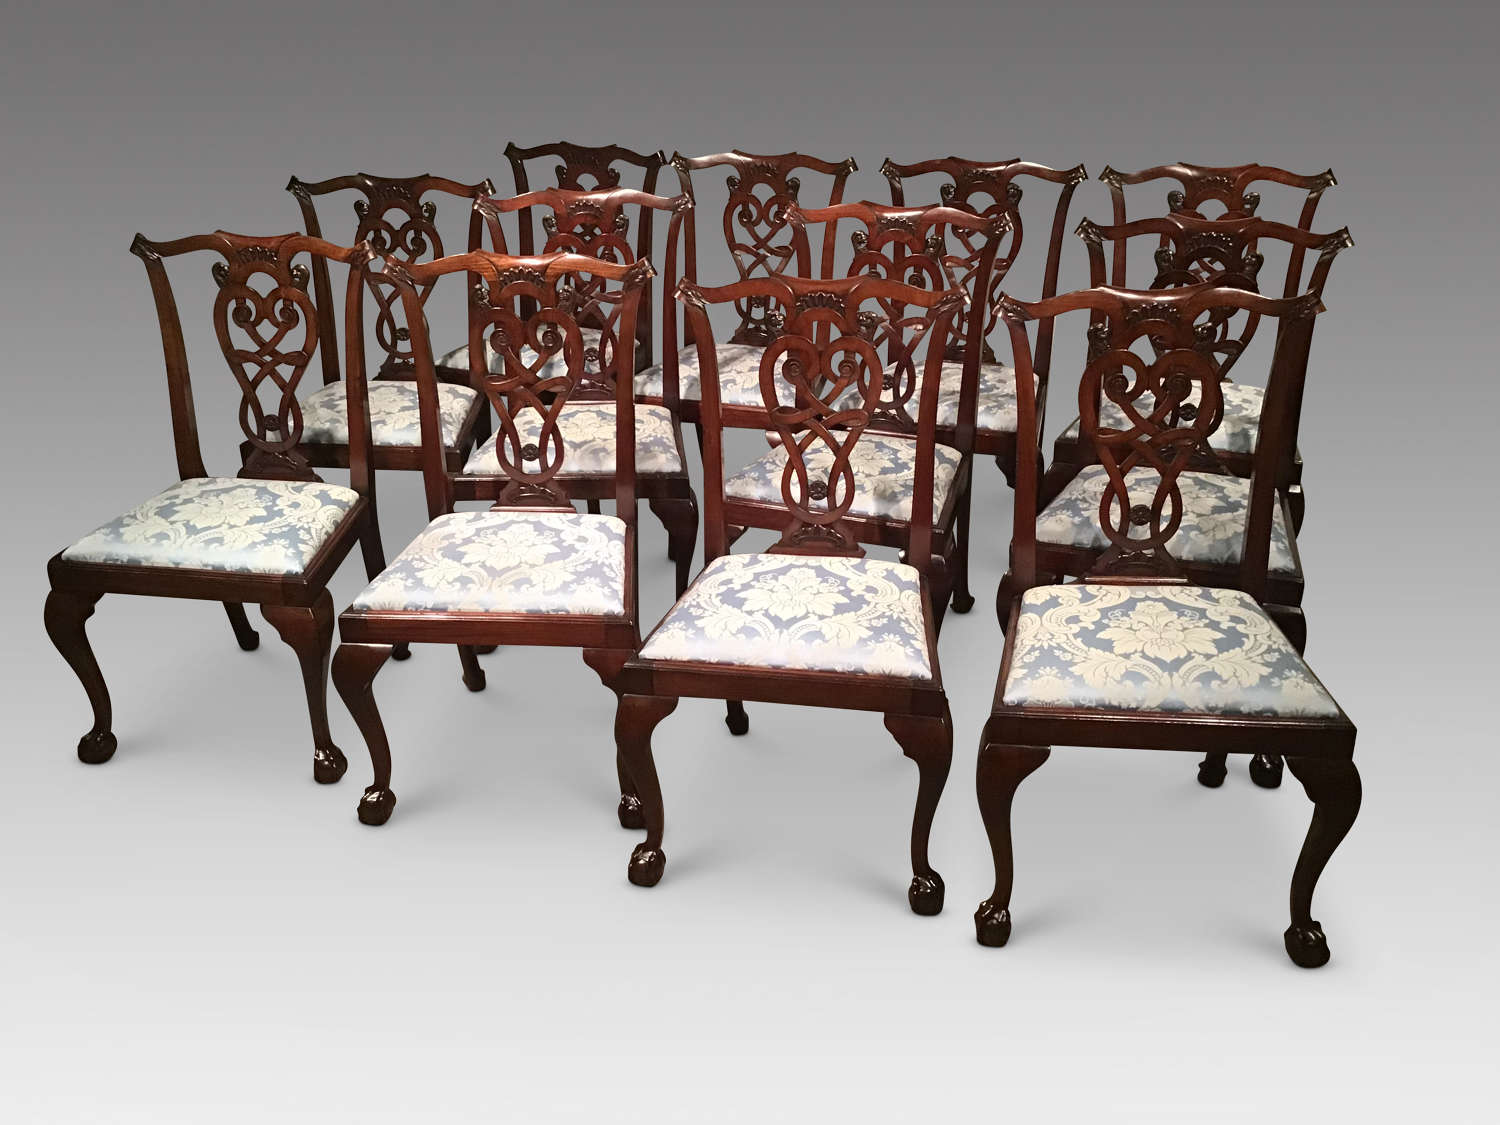 Set of 12 antique mahogany dining chairs